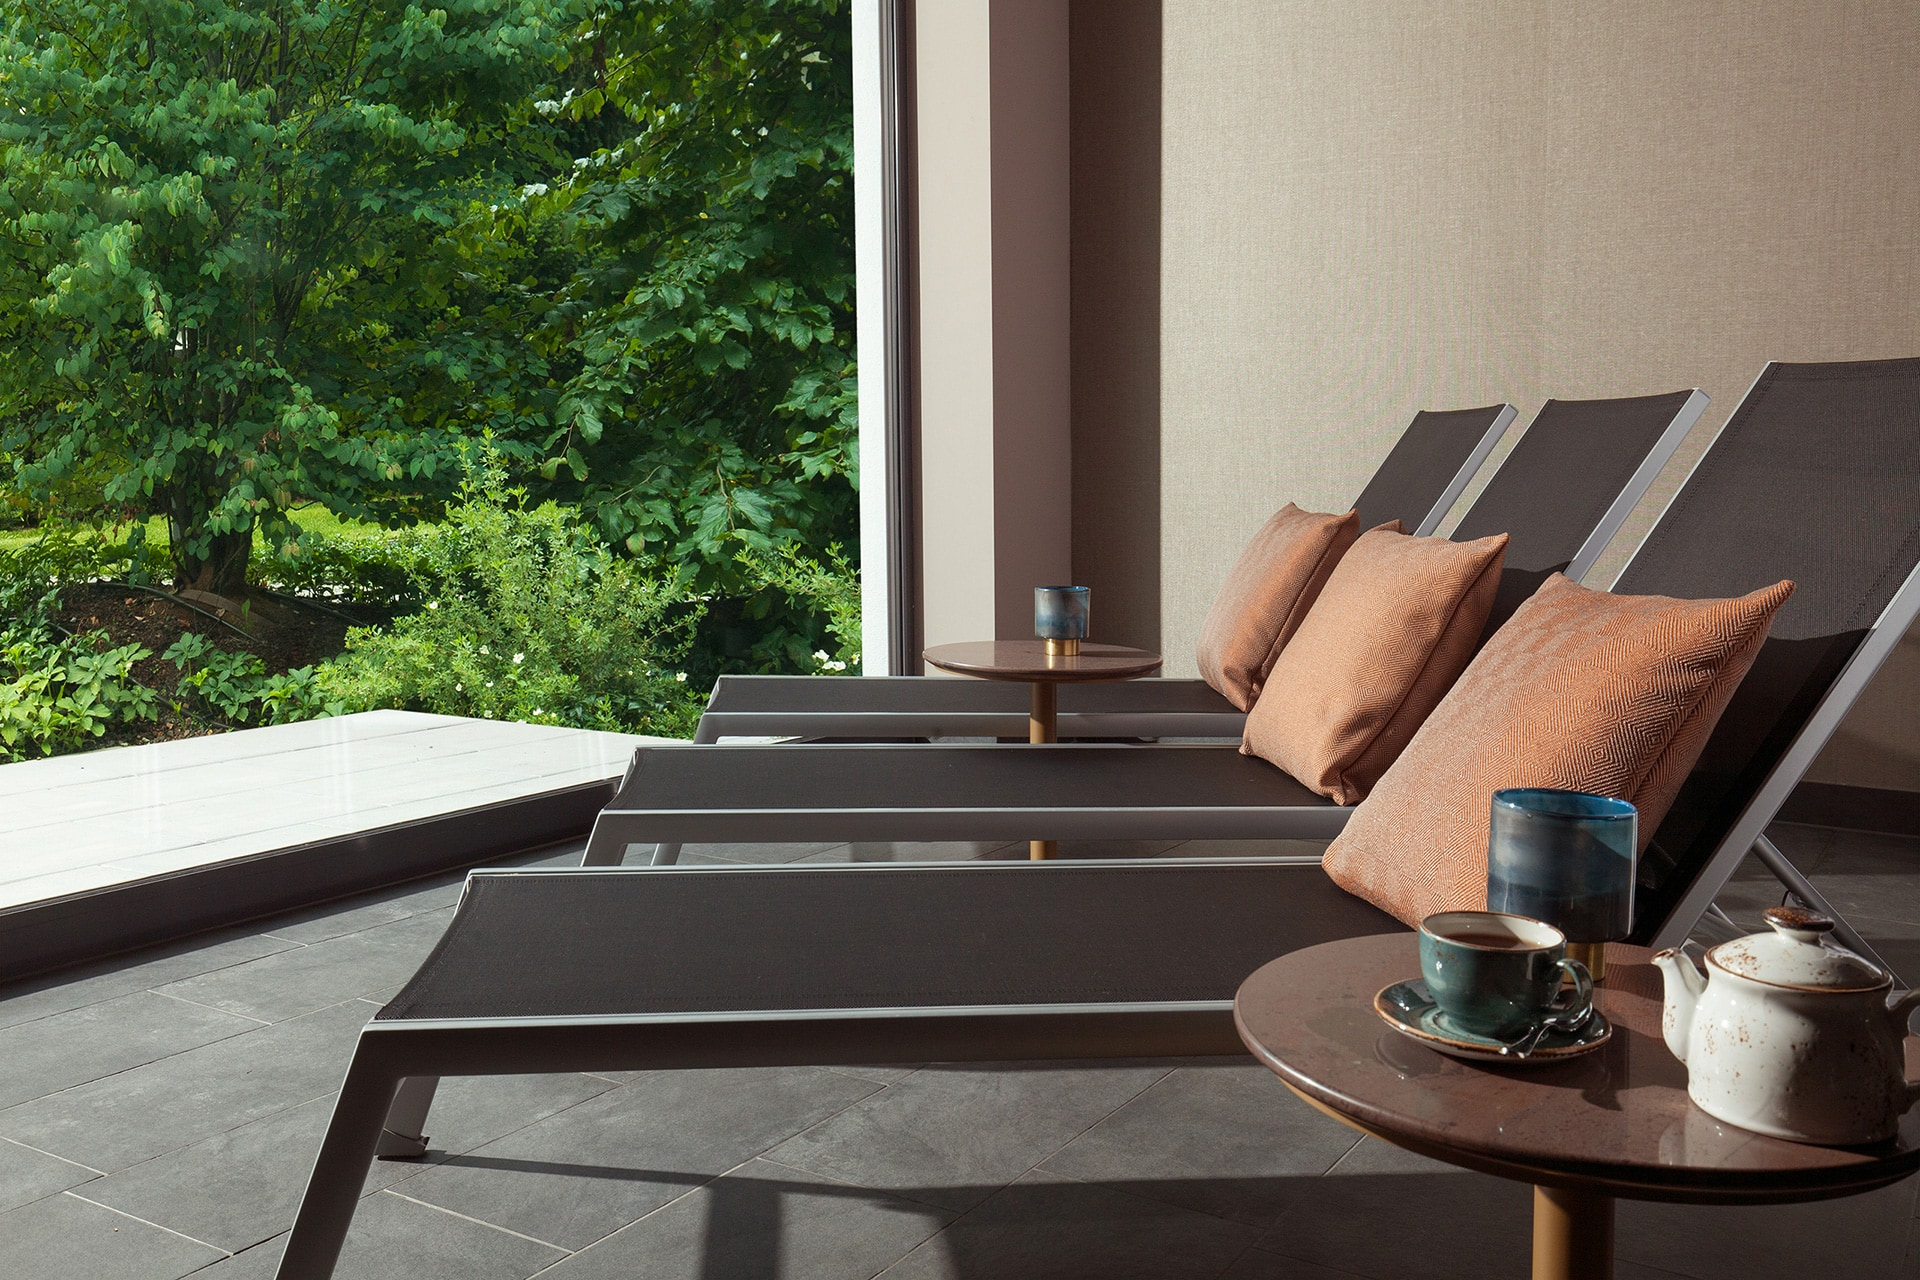 Spa area at the ACASA Suites Zurich with a clear view into the garden